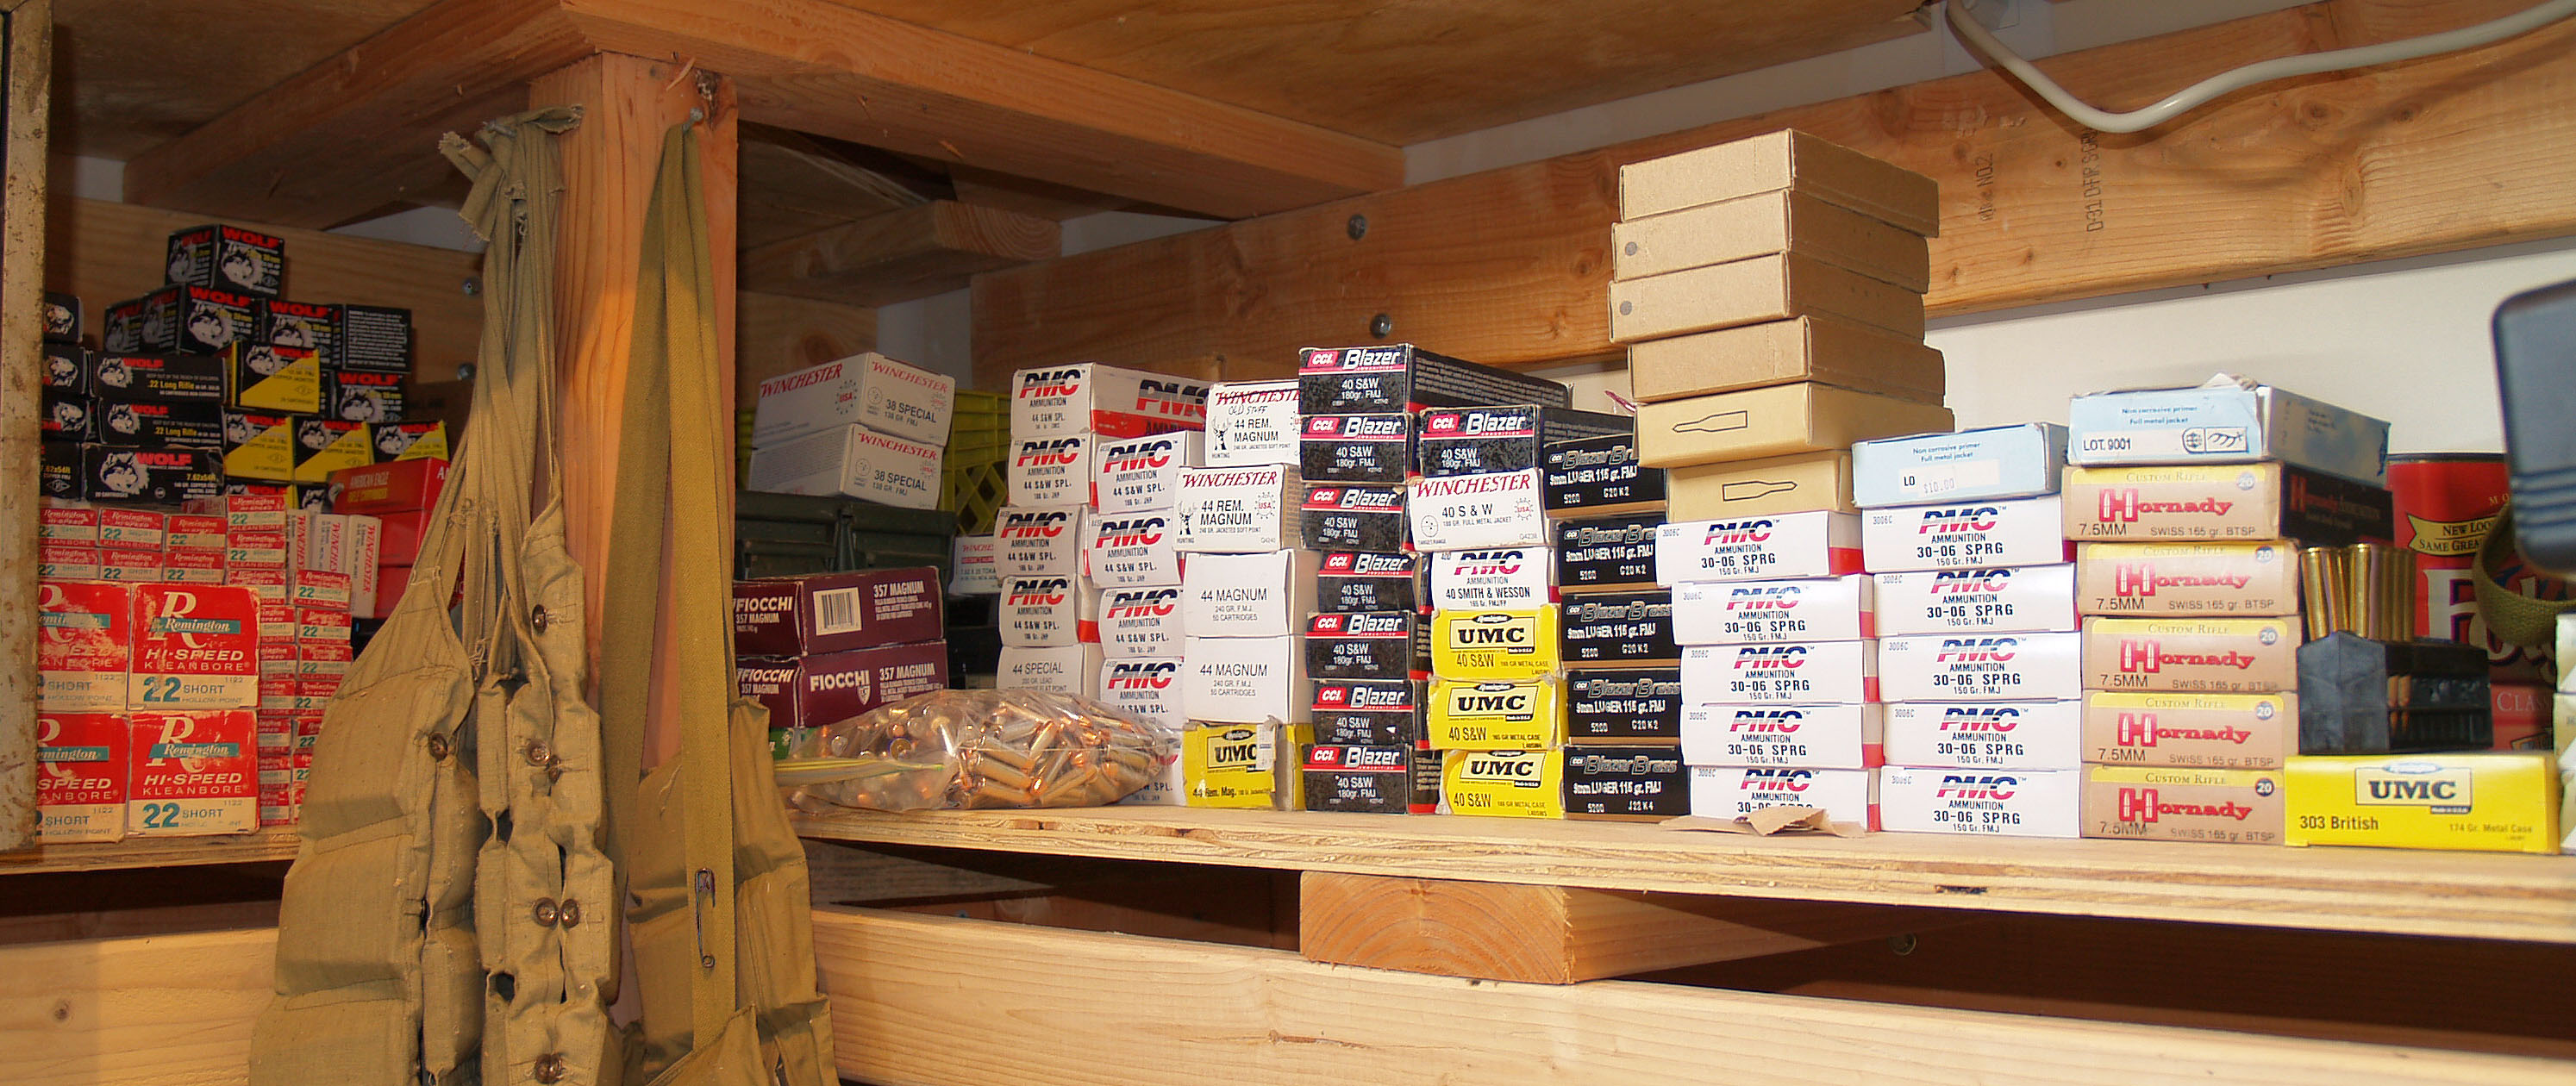 Bulk ammo for sale at pre-panic prices, eh!